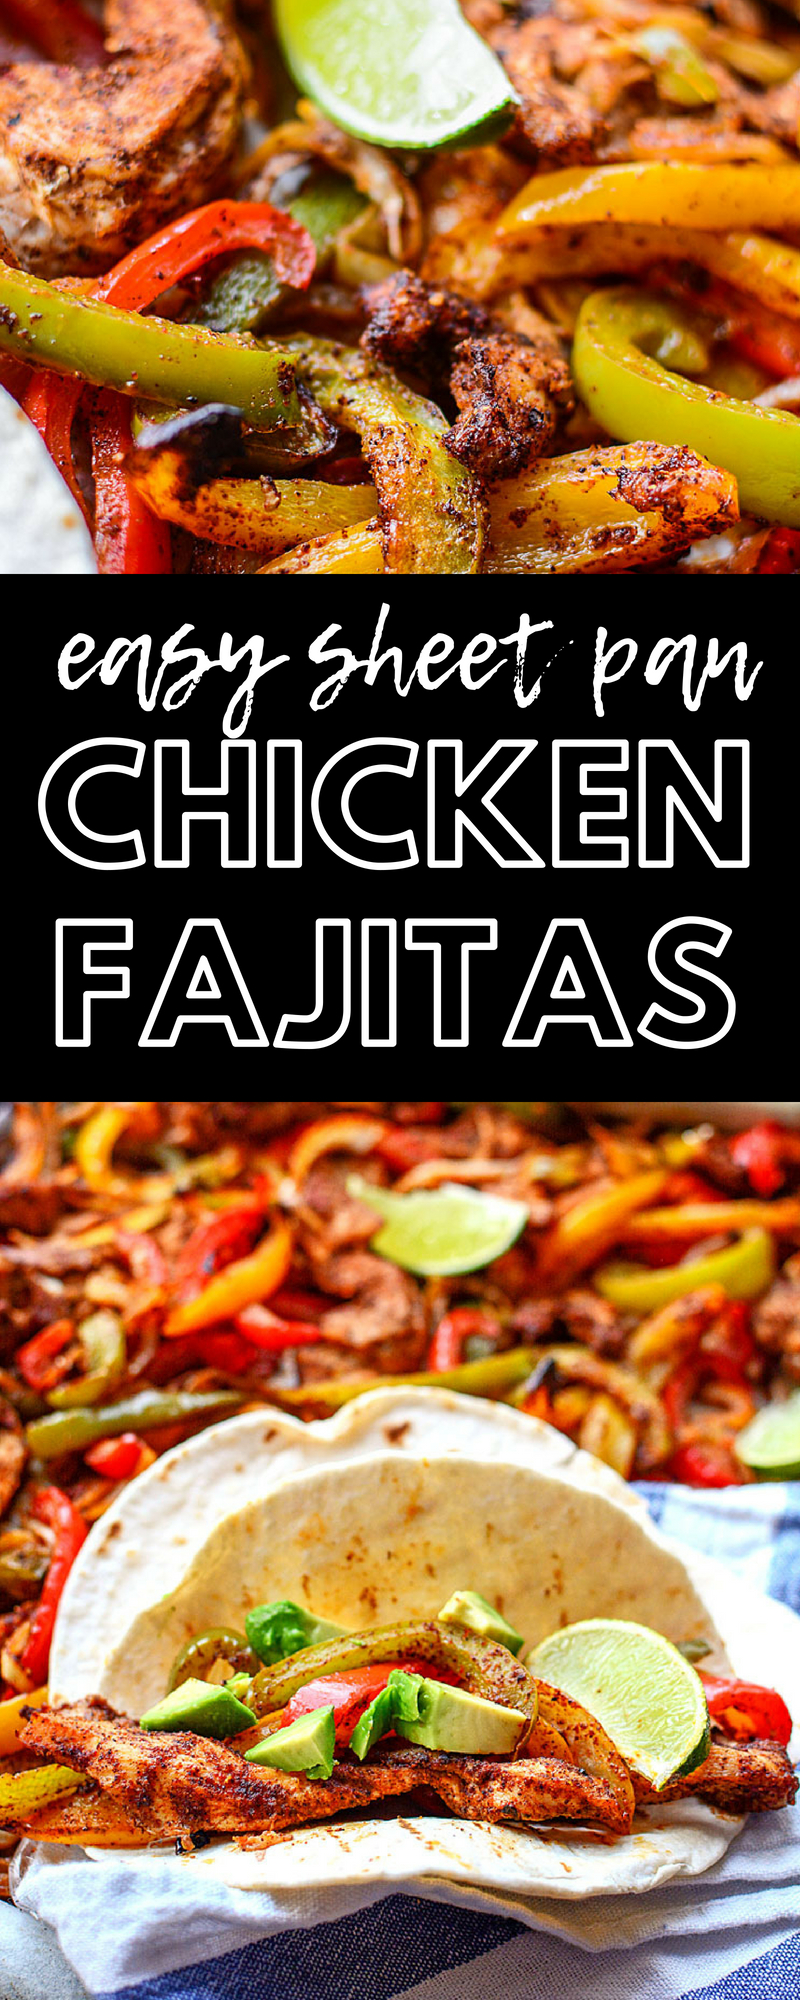 Easy Sheet Pan Chicken Fajitas - They're soooo good! Like Restaurant quality - but EVEN BETTER!